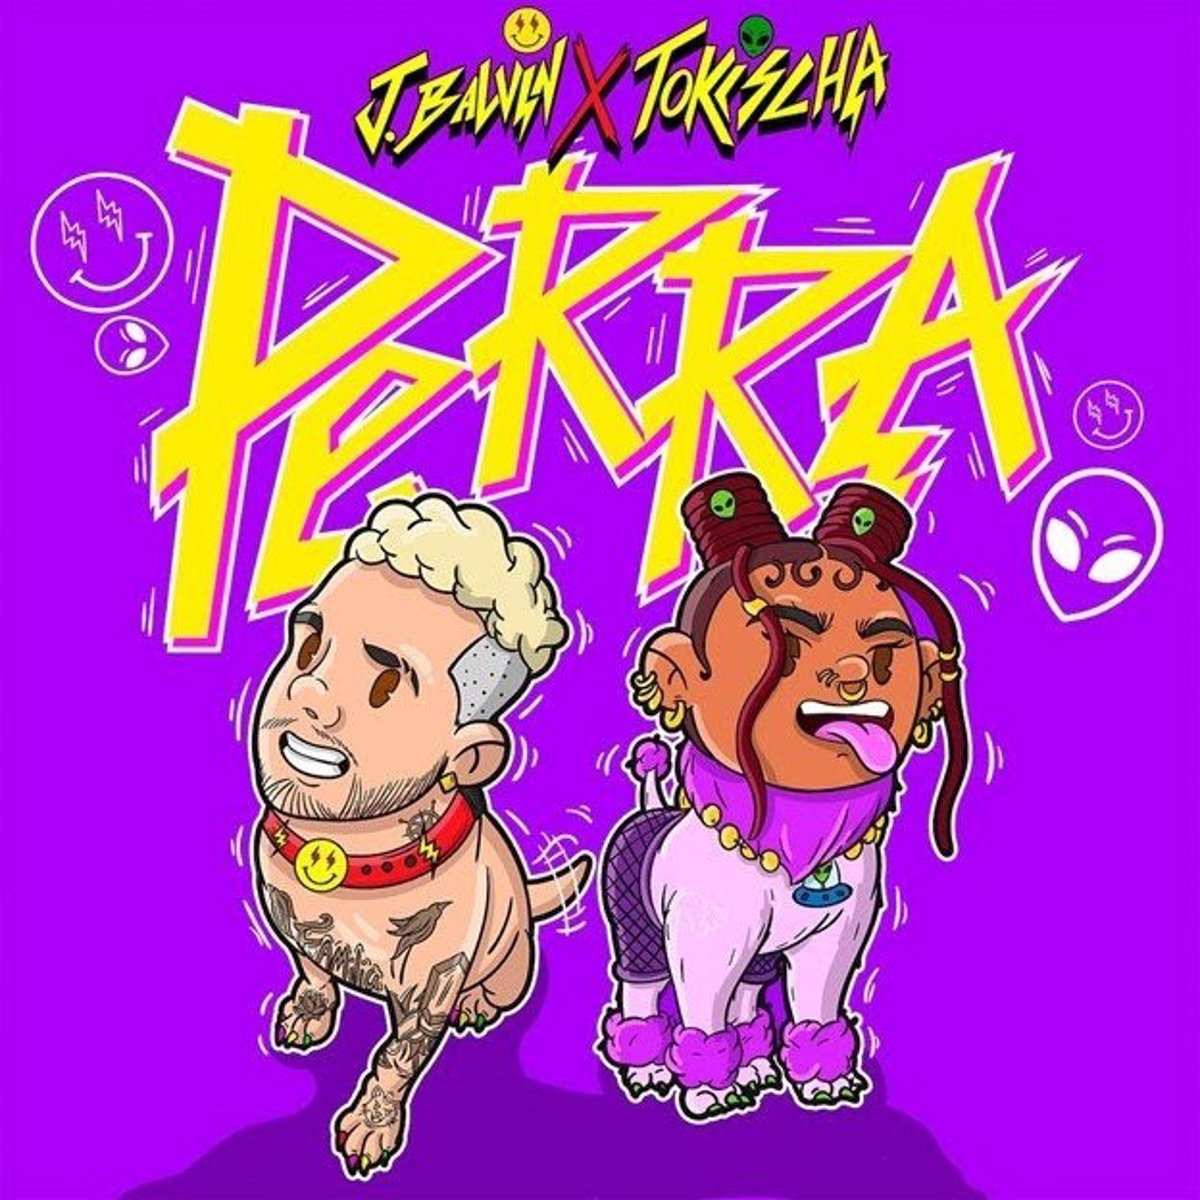 Reaggeton singer J. Balvin releases 'Perra', a new song from his album 'Jose', on sale September 10